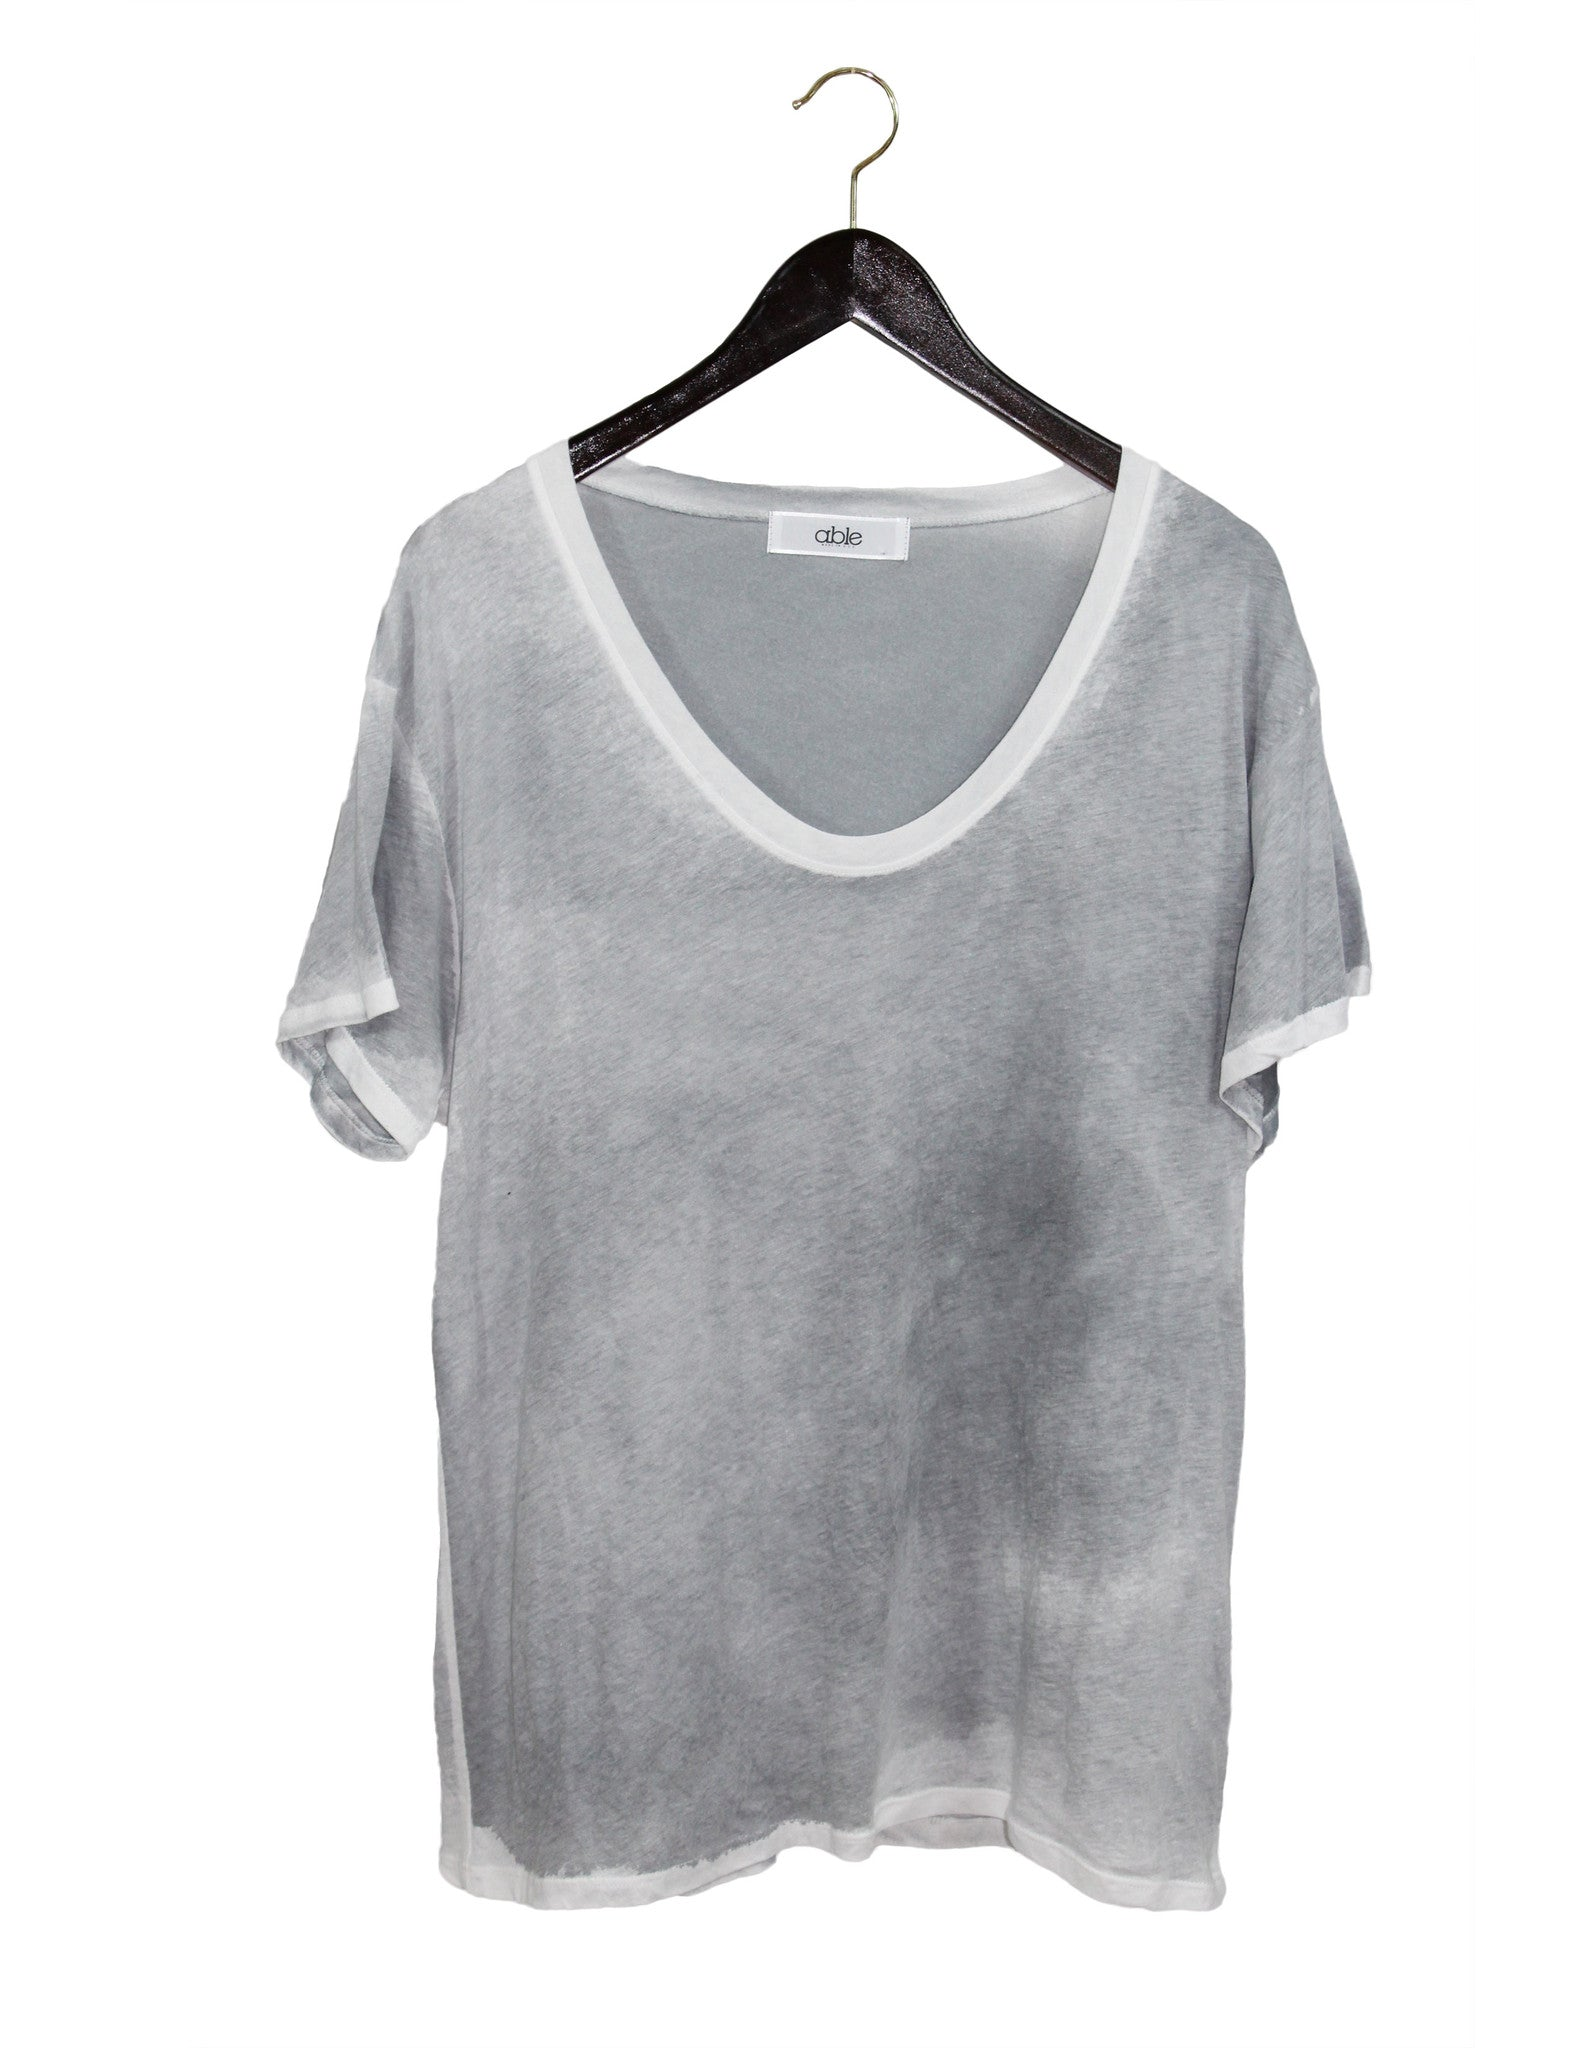 Grey Dyed Tee / Ethical Fashion